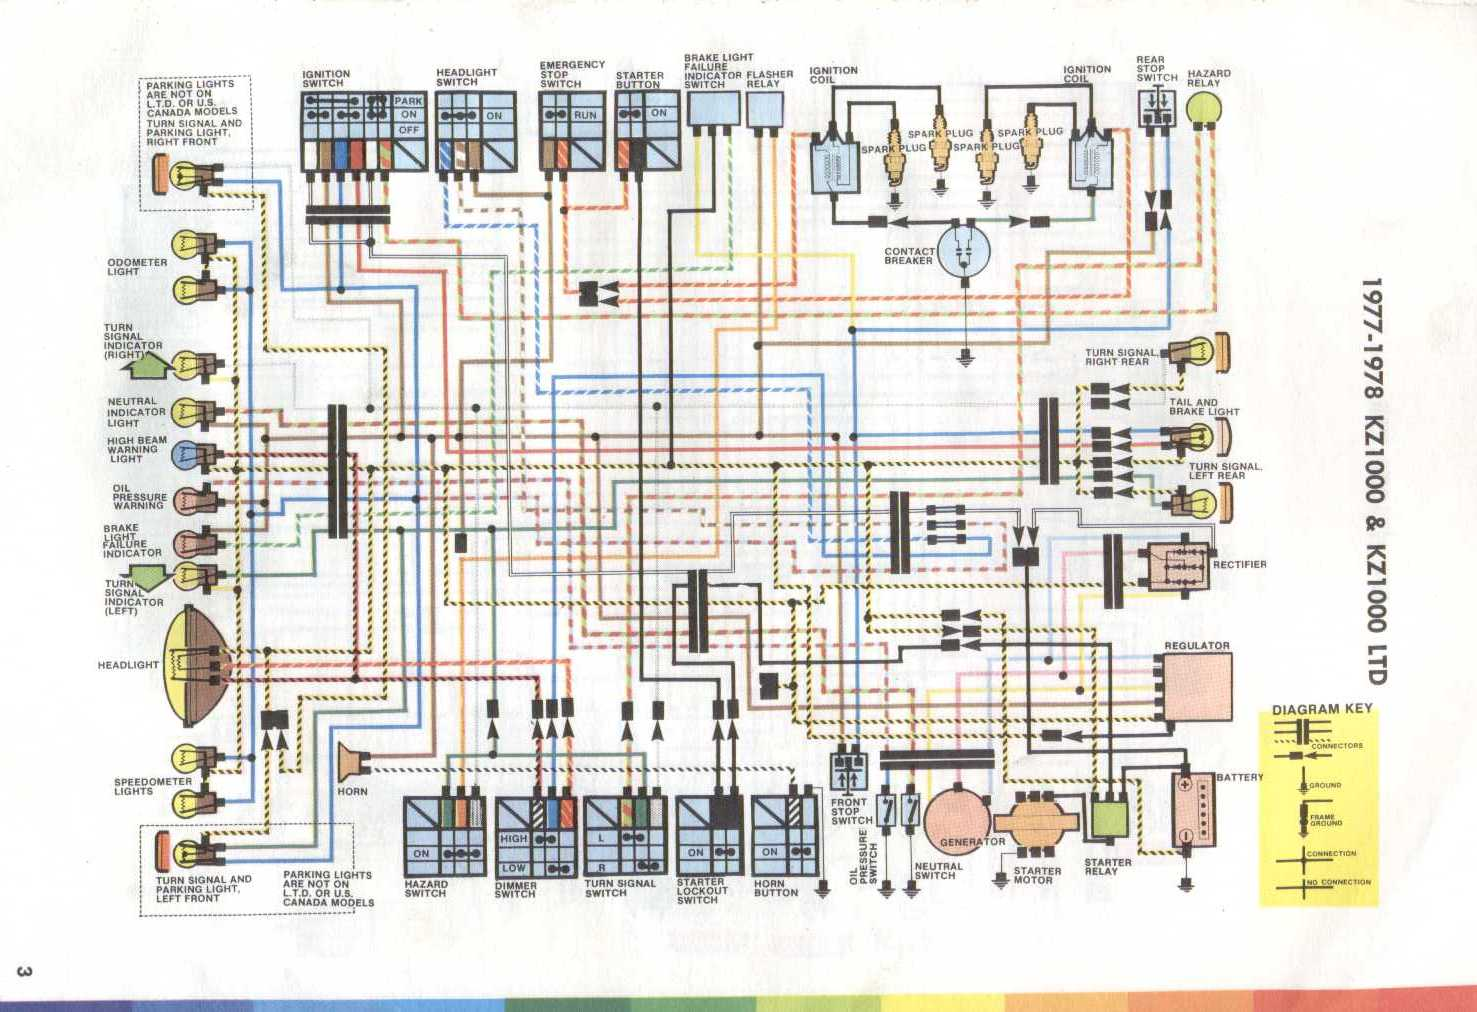 Kz650 Wiring Diagram Kz440 Wiring Diagram Zl900 Eliminator